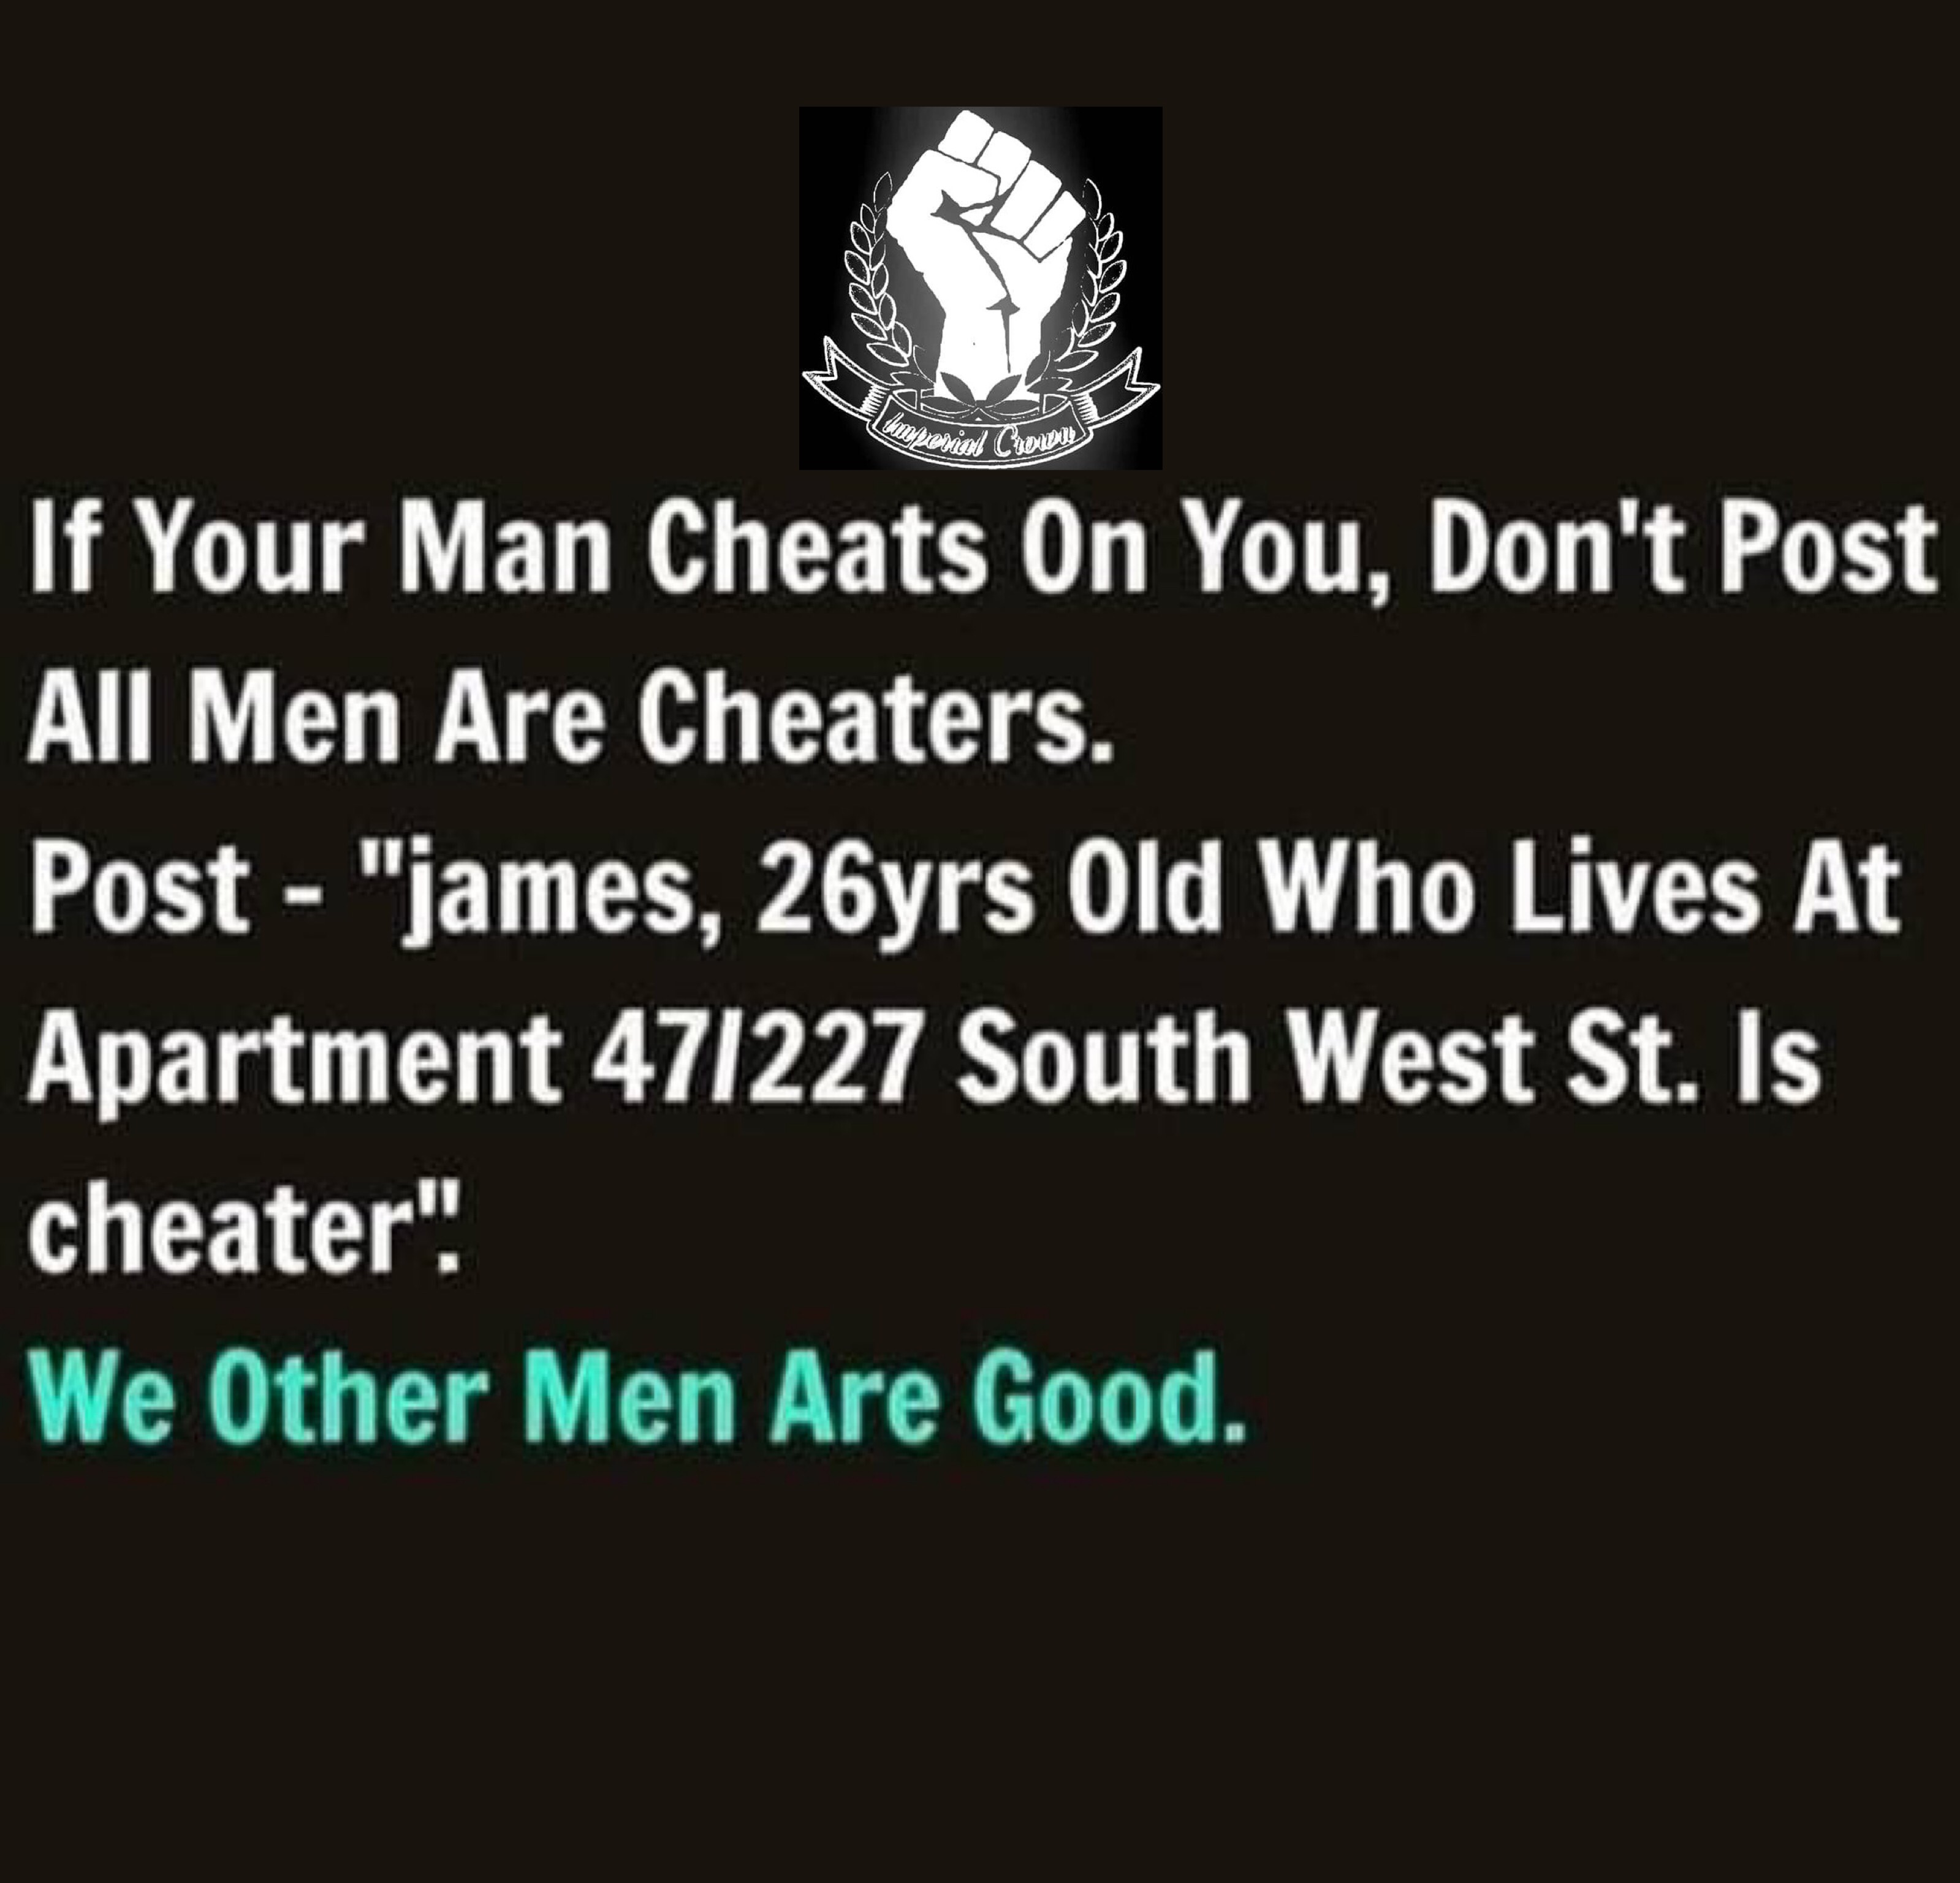 If your man cheats on you don't post all men are cheaters post